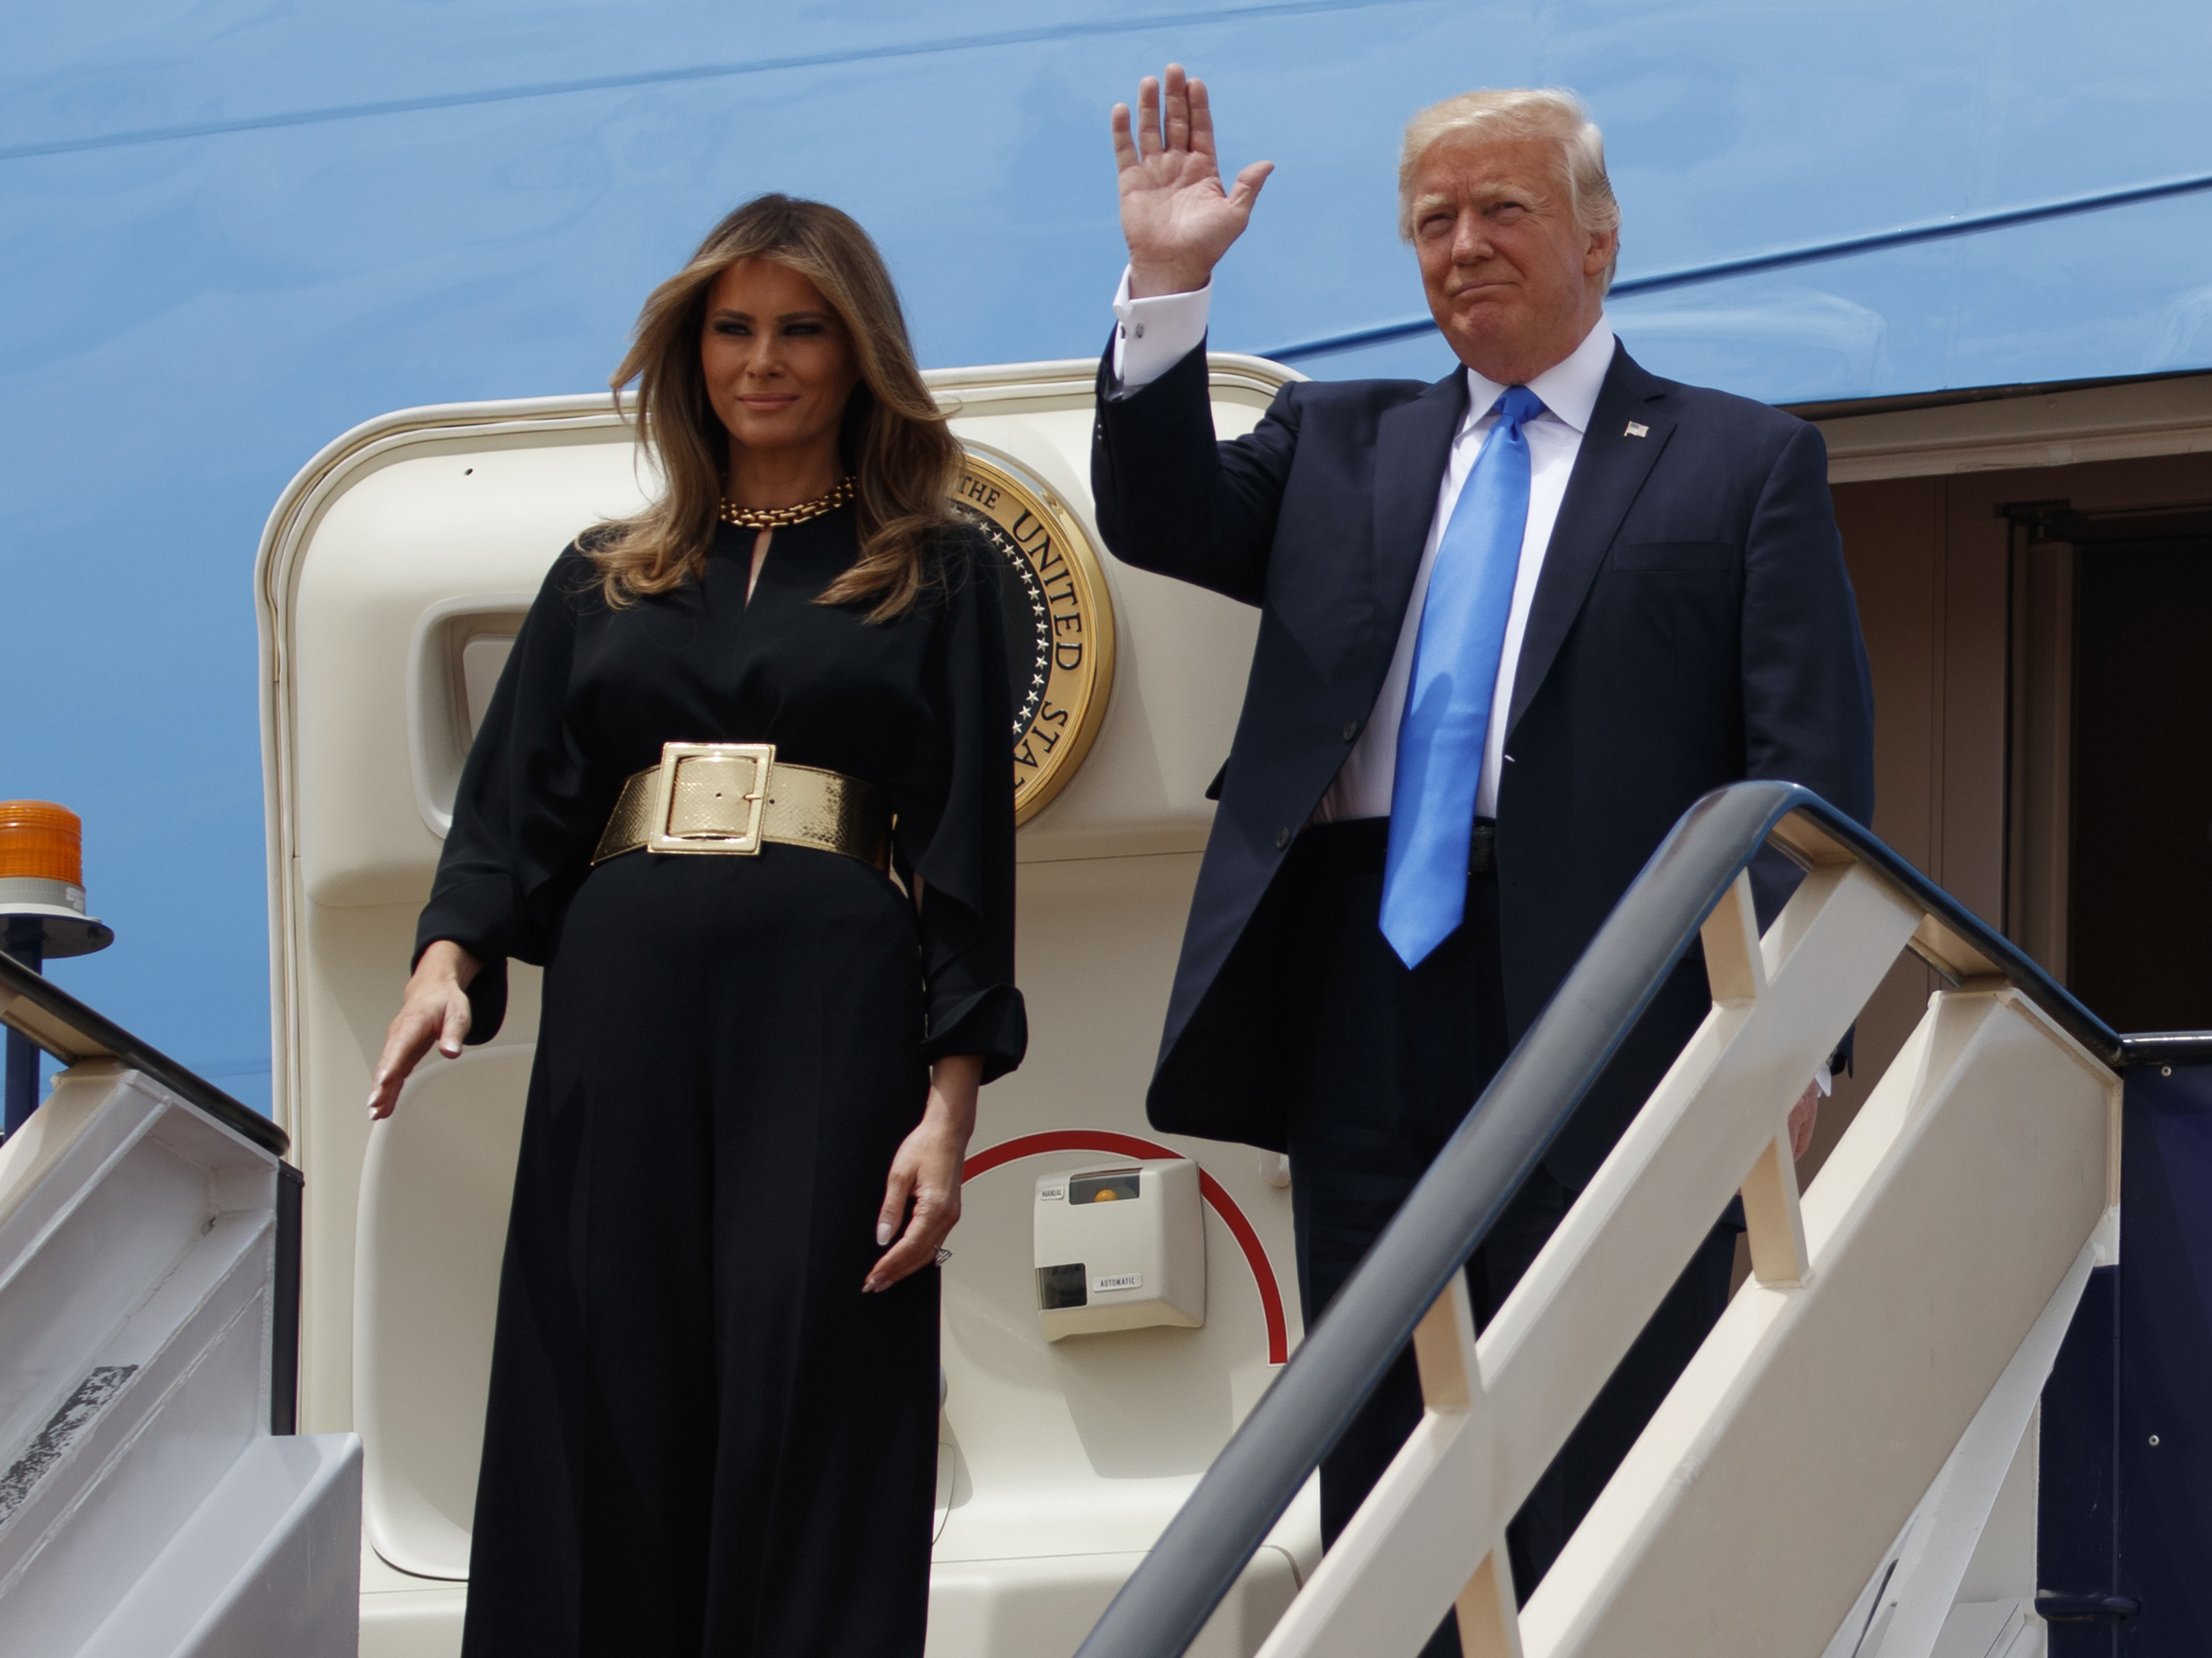 Why Did Melania Trump Cover Her Hair At The Vatican But Not In Saudi Arabia?